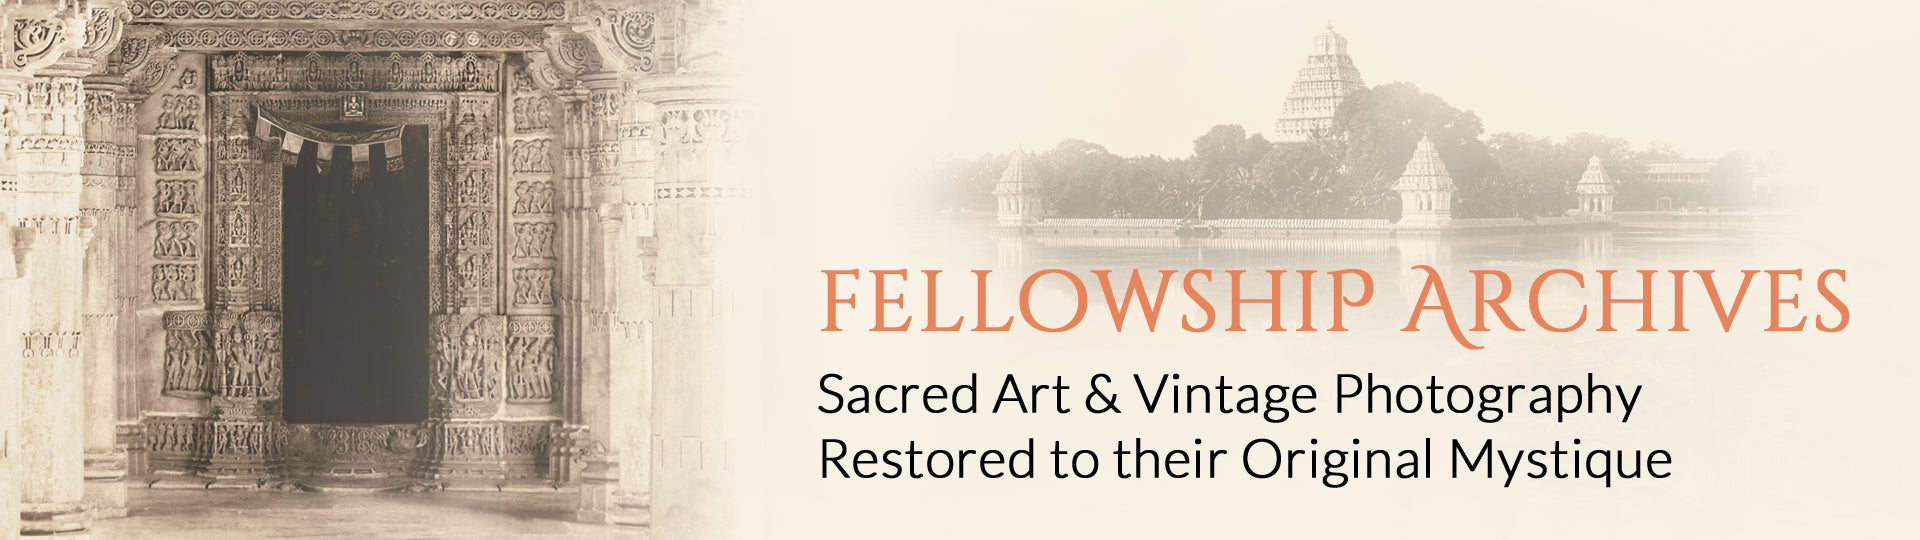 Fellowship Archives